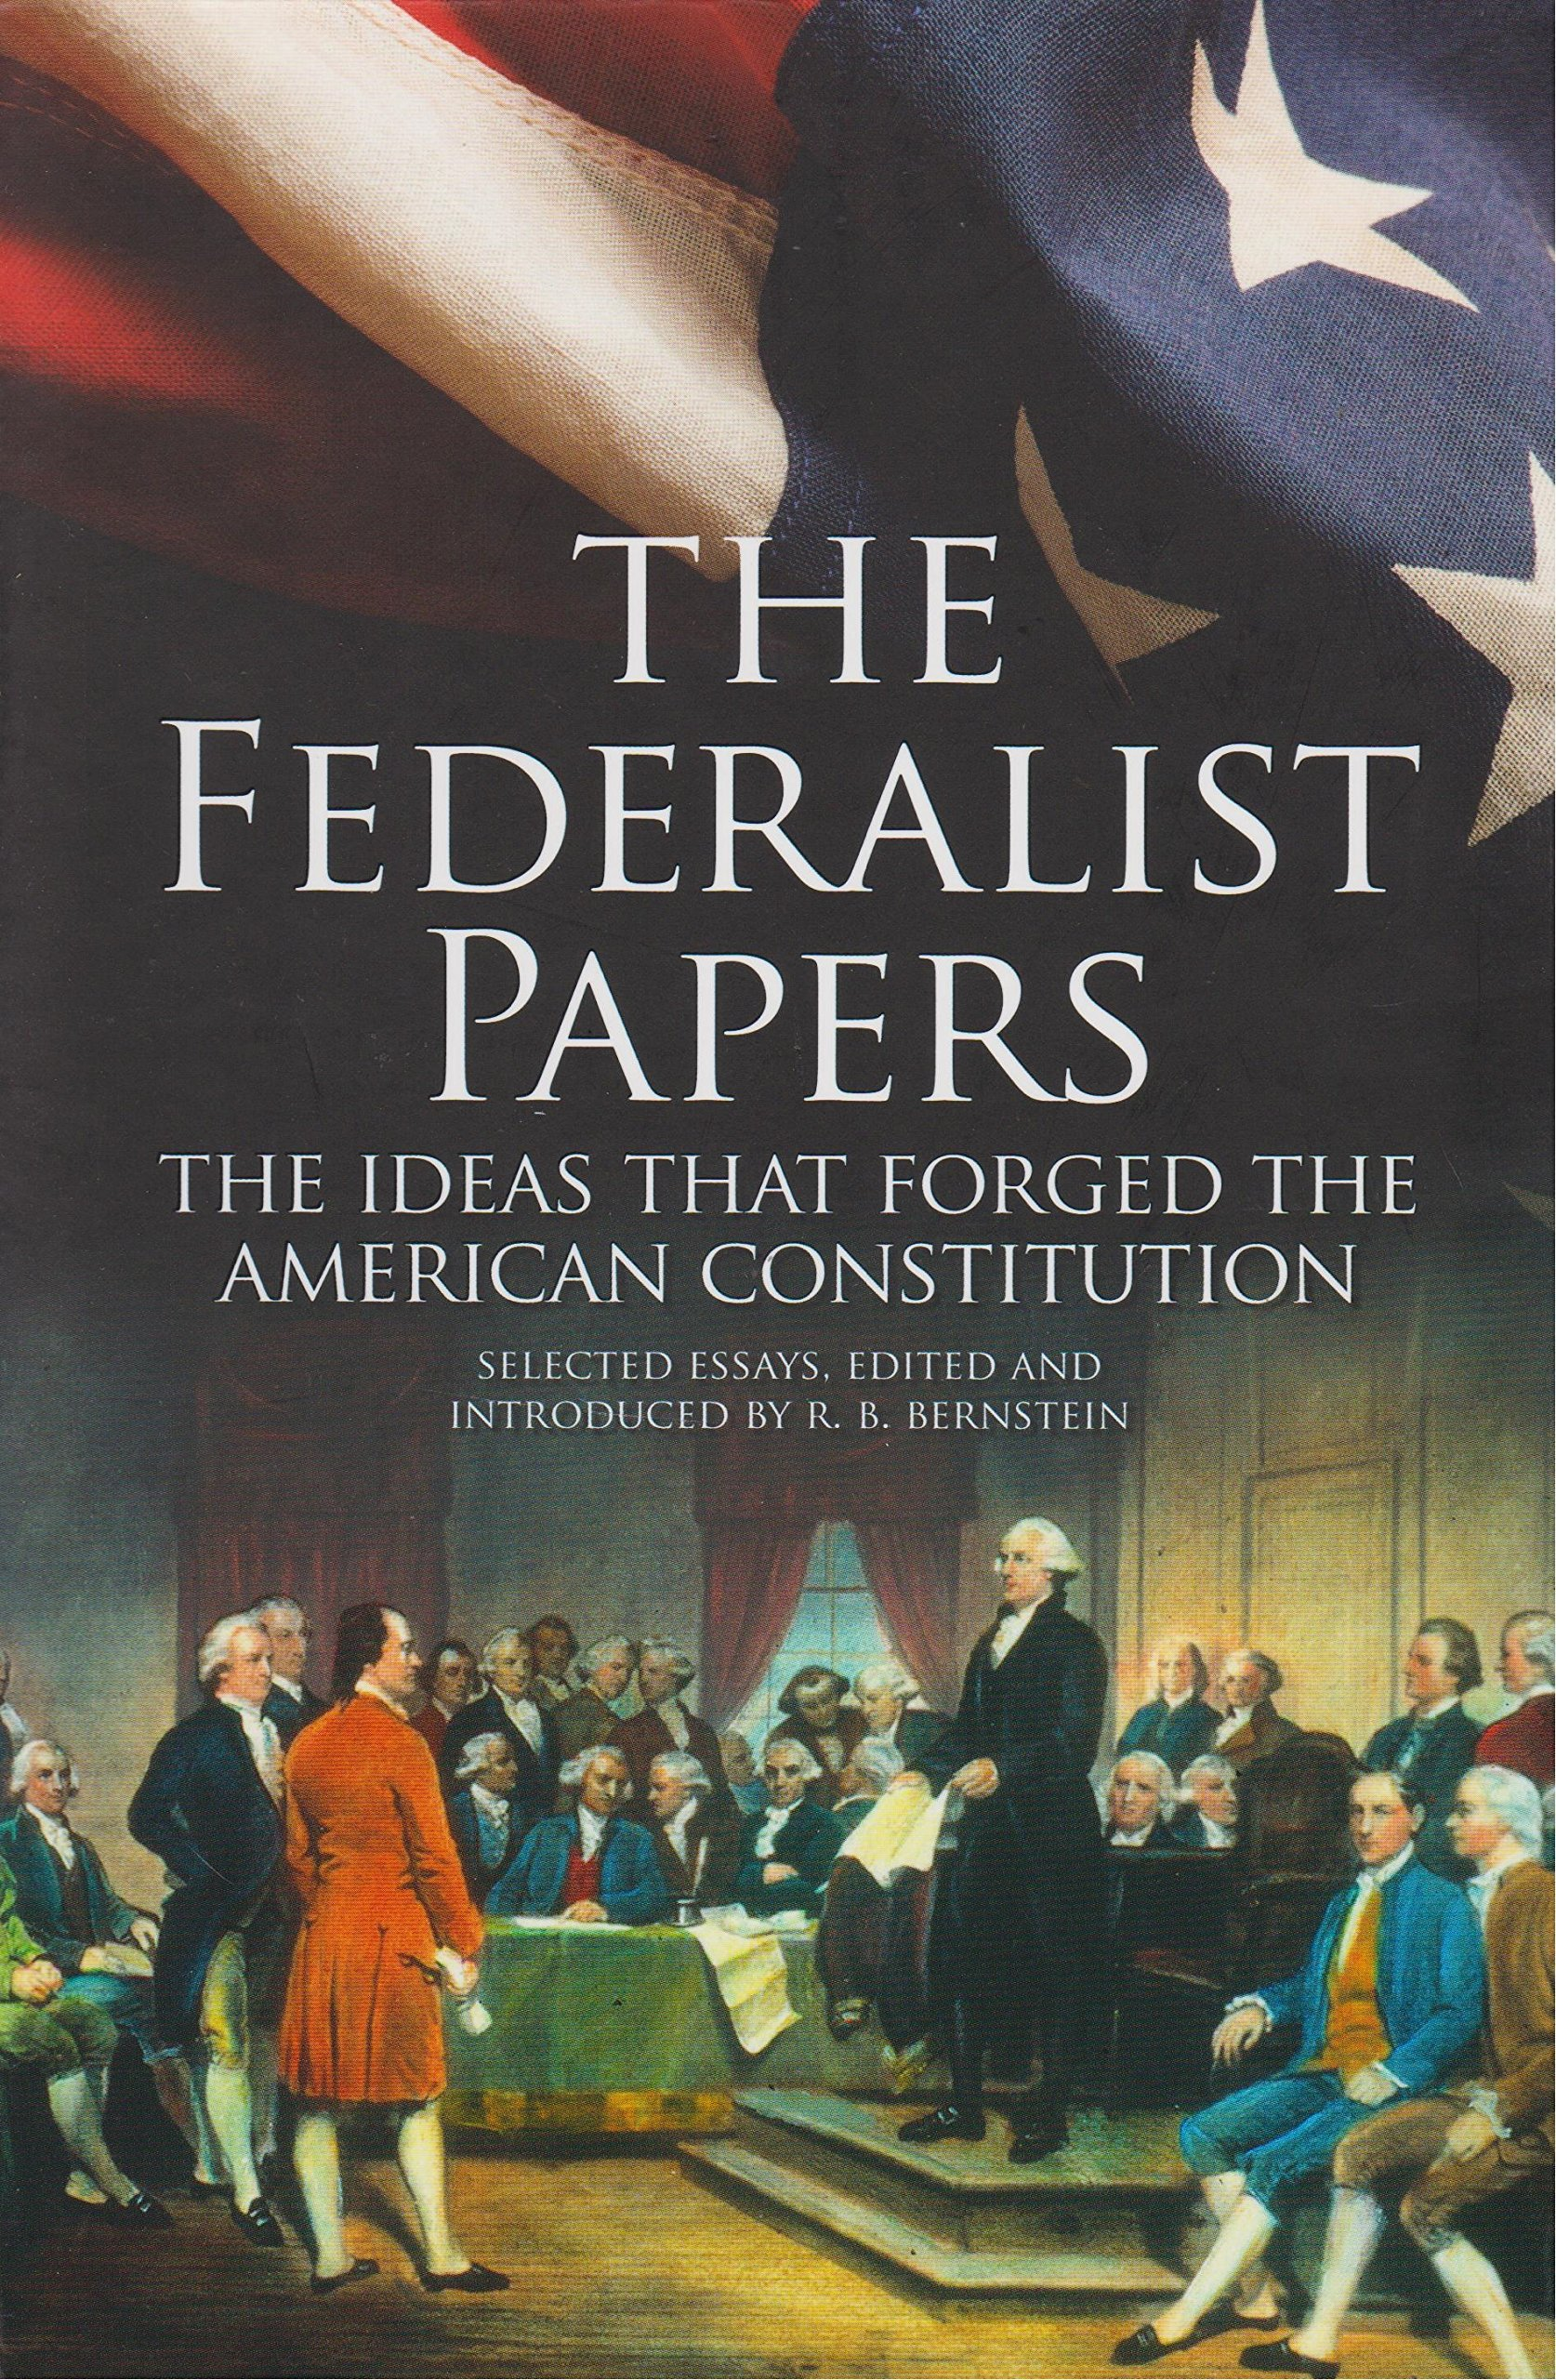 the federalist papers the ideas that forged the american the federalist papers the ideas that forged the american constitution slip case edition alexander hamilton james madison john jay r b bernstein